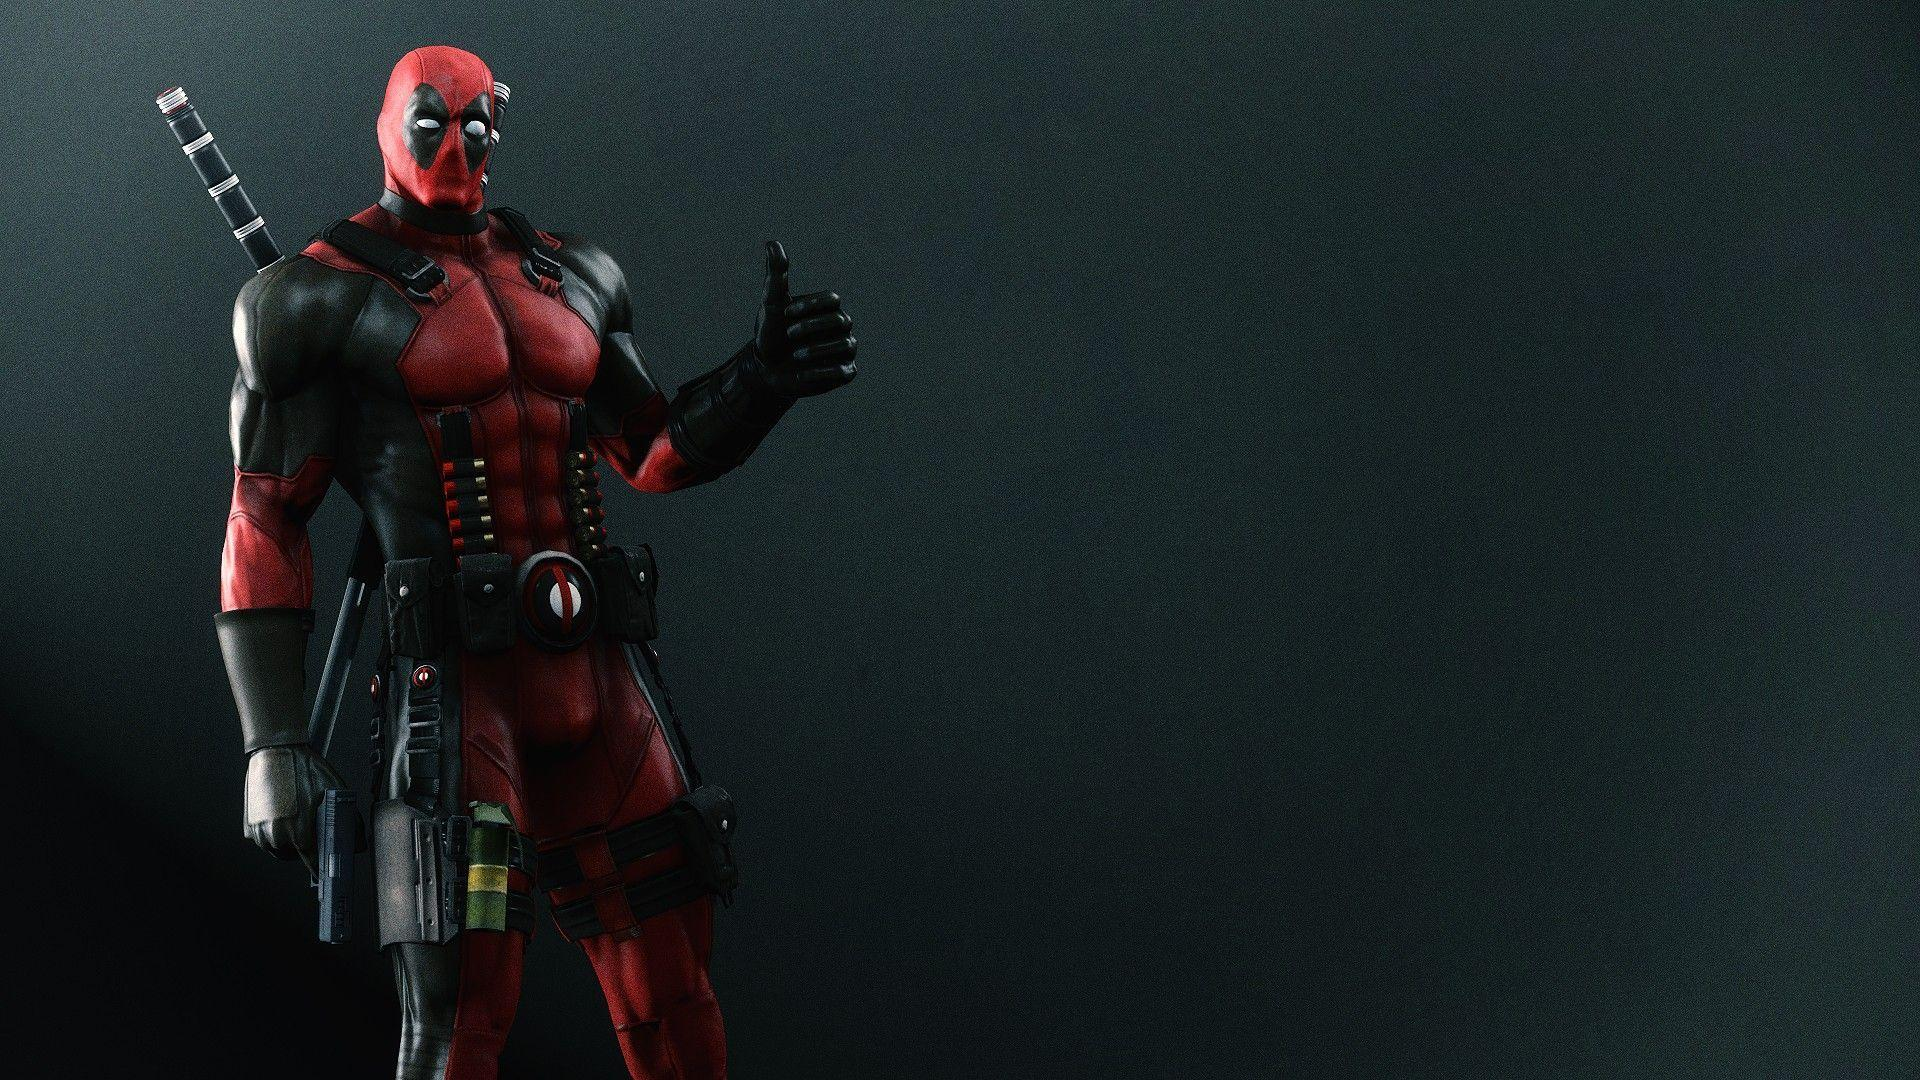 deadpool wallpaper hd 1080p -#main